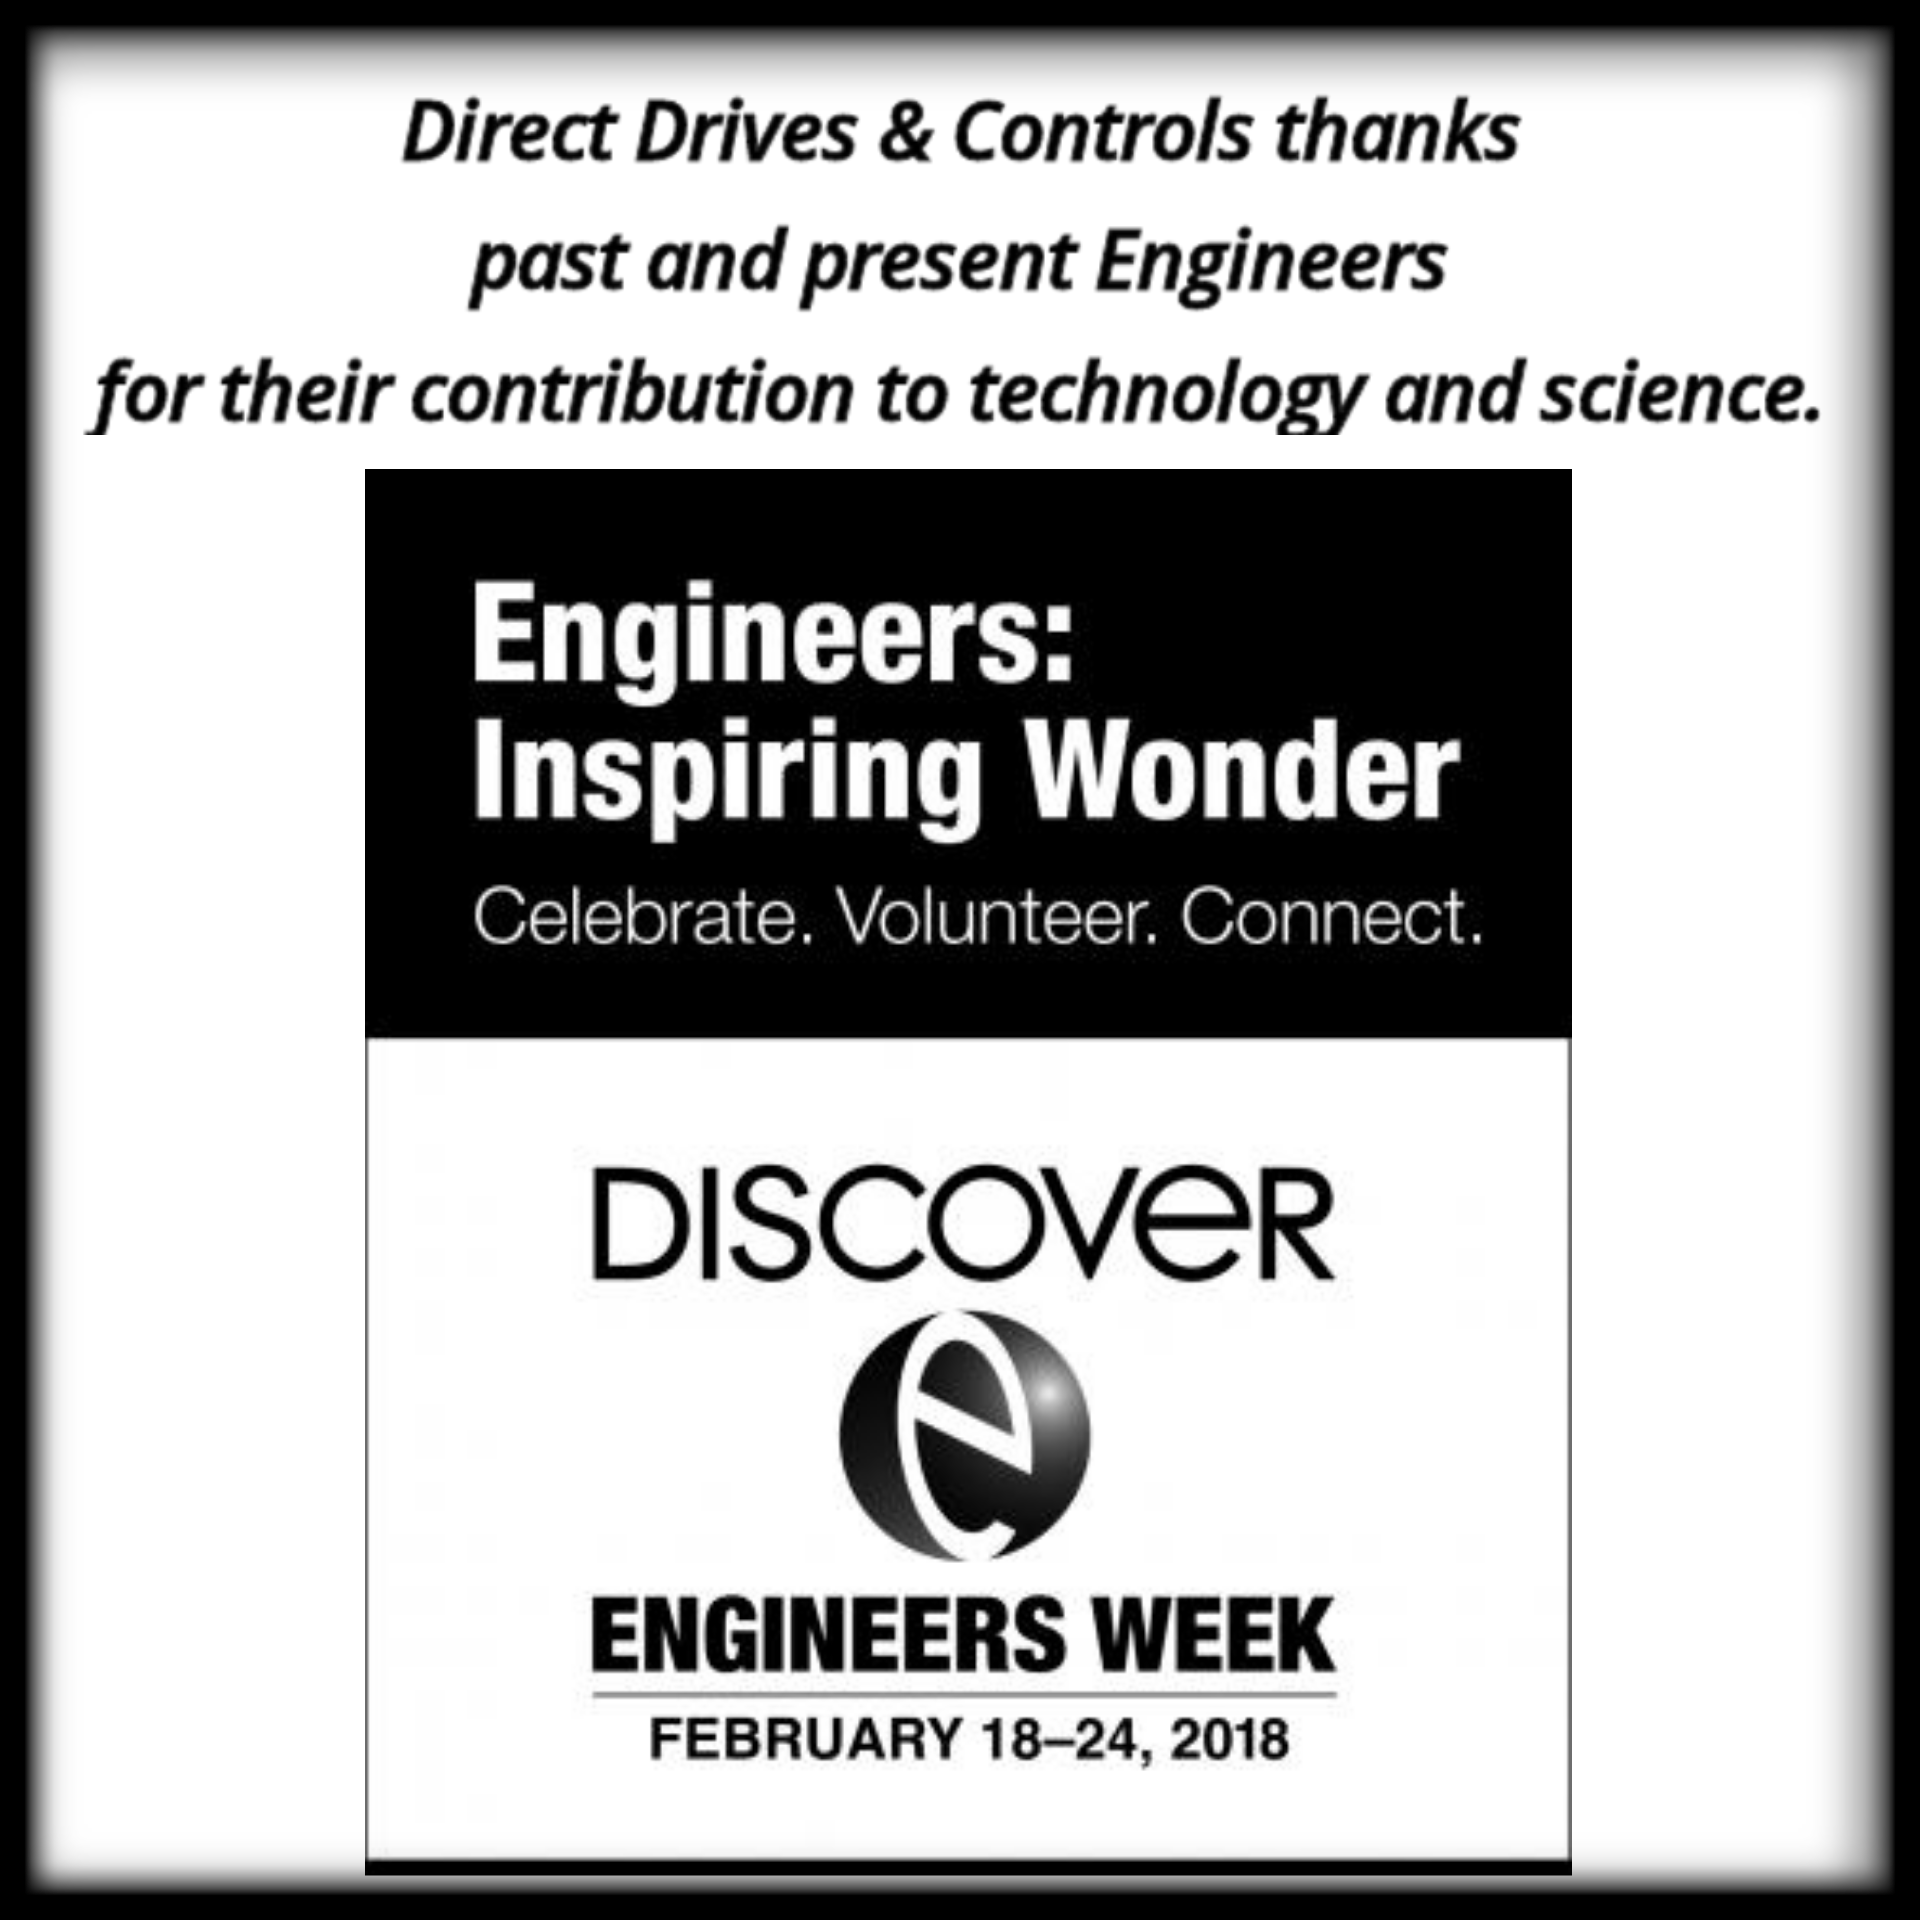 Thank you to engineers